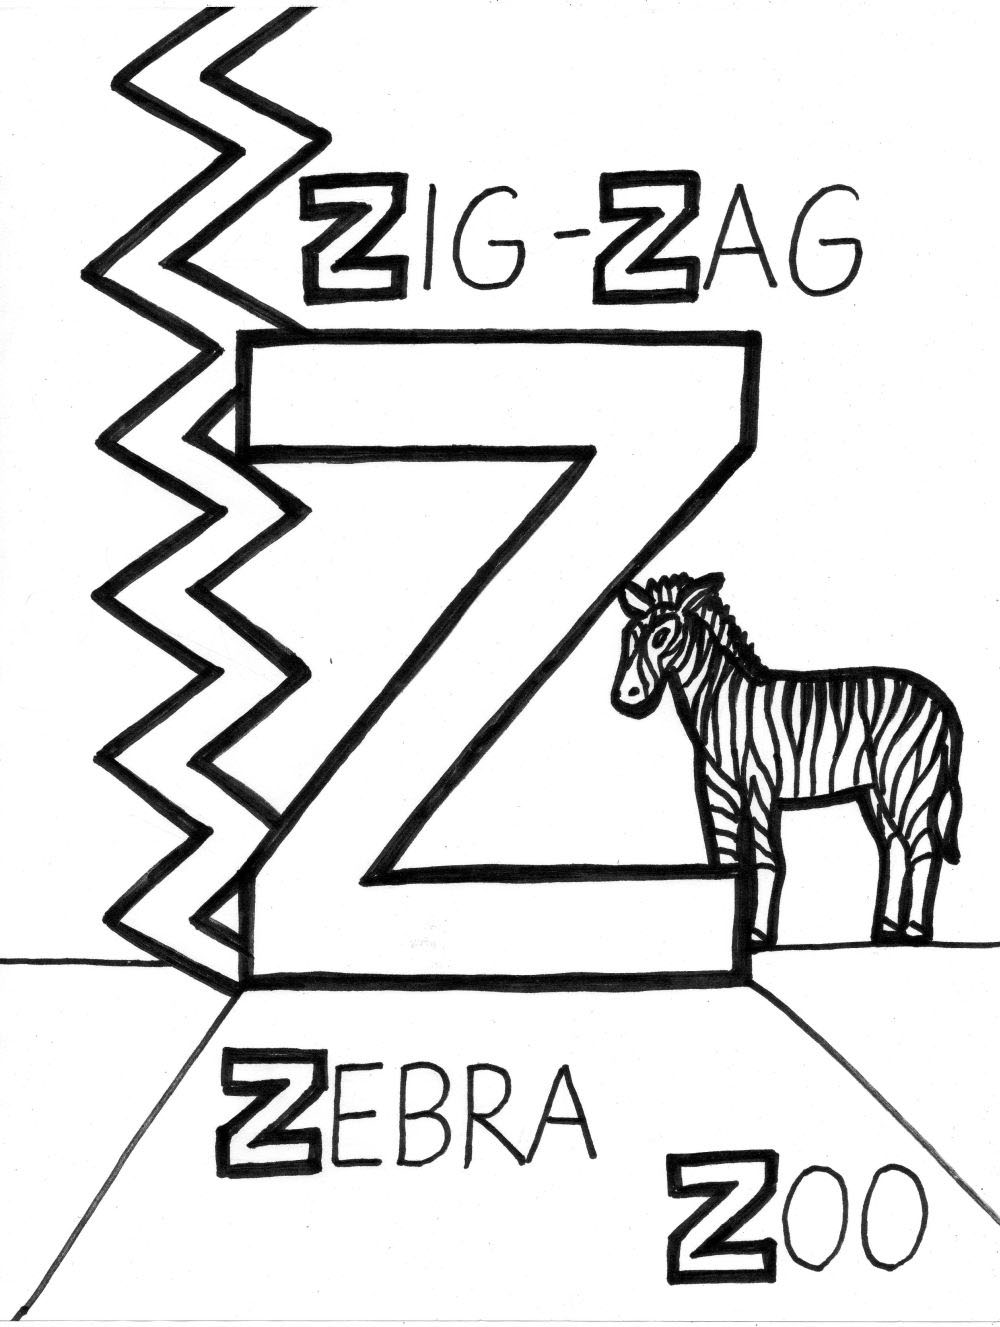 coloring pages alphabet a - letter z coloring pages to download and print for free